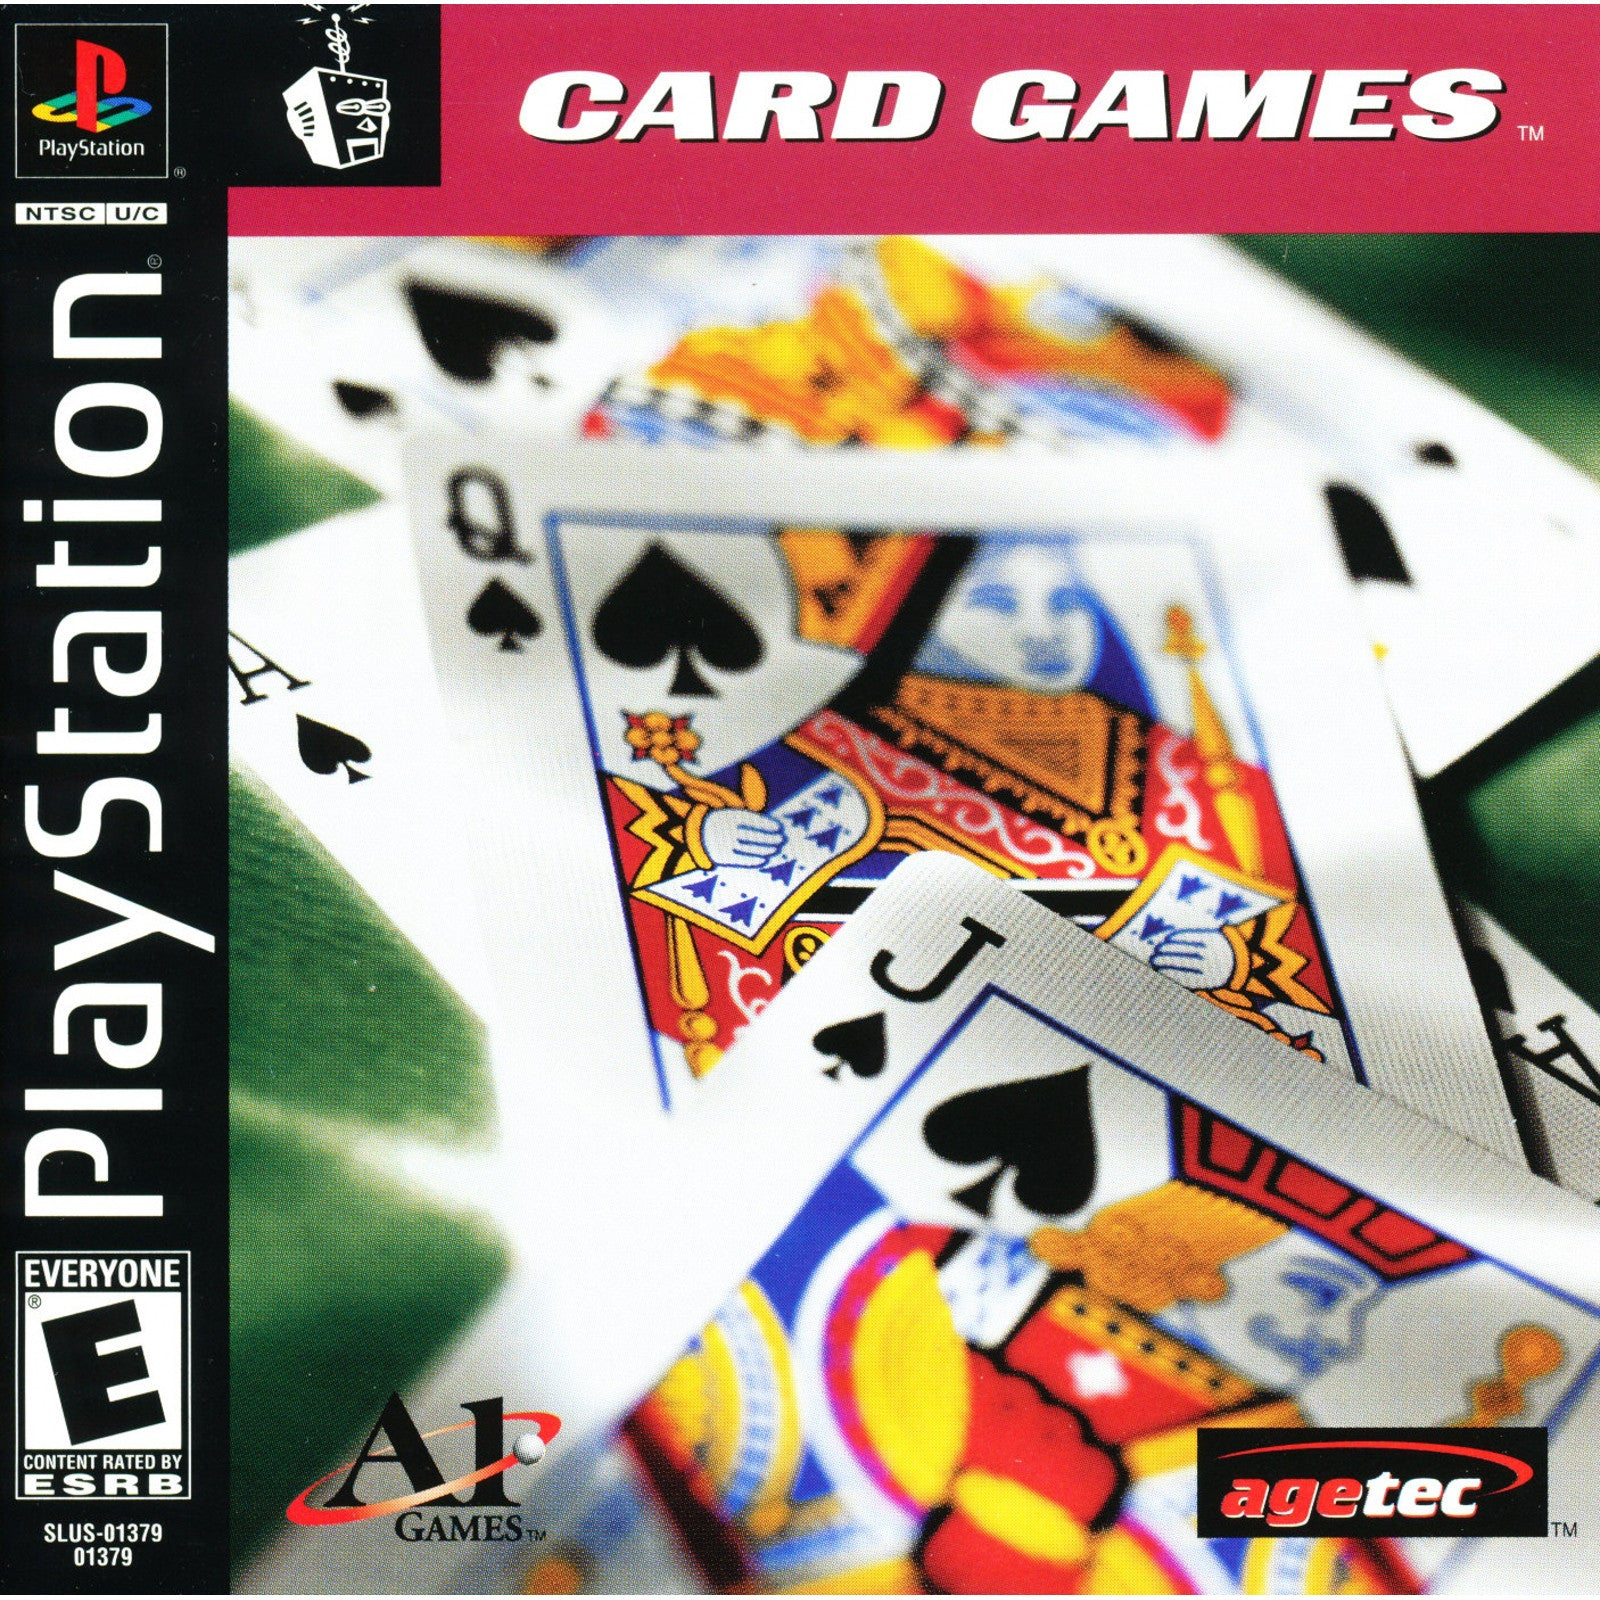 Card Games for PlayStation 1